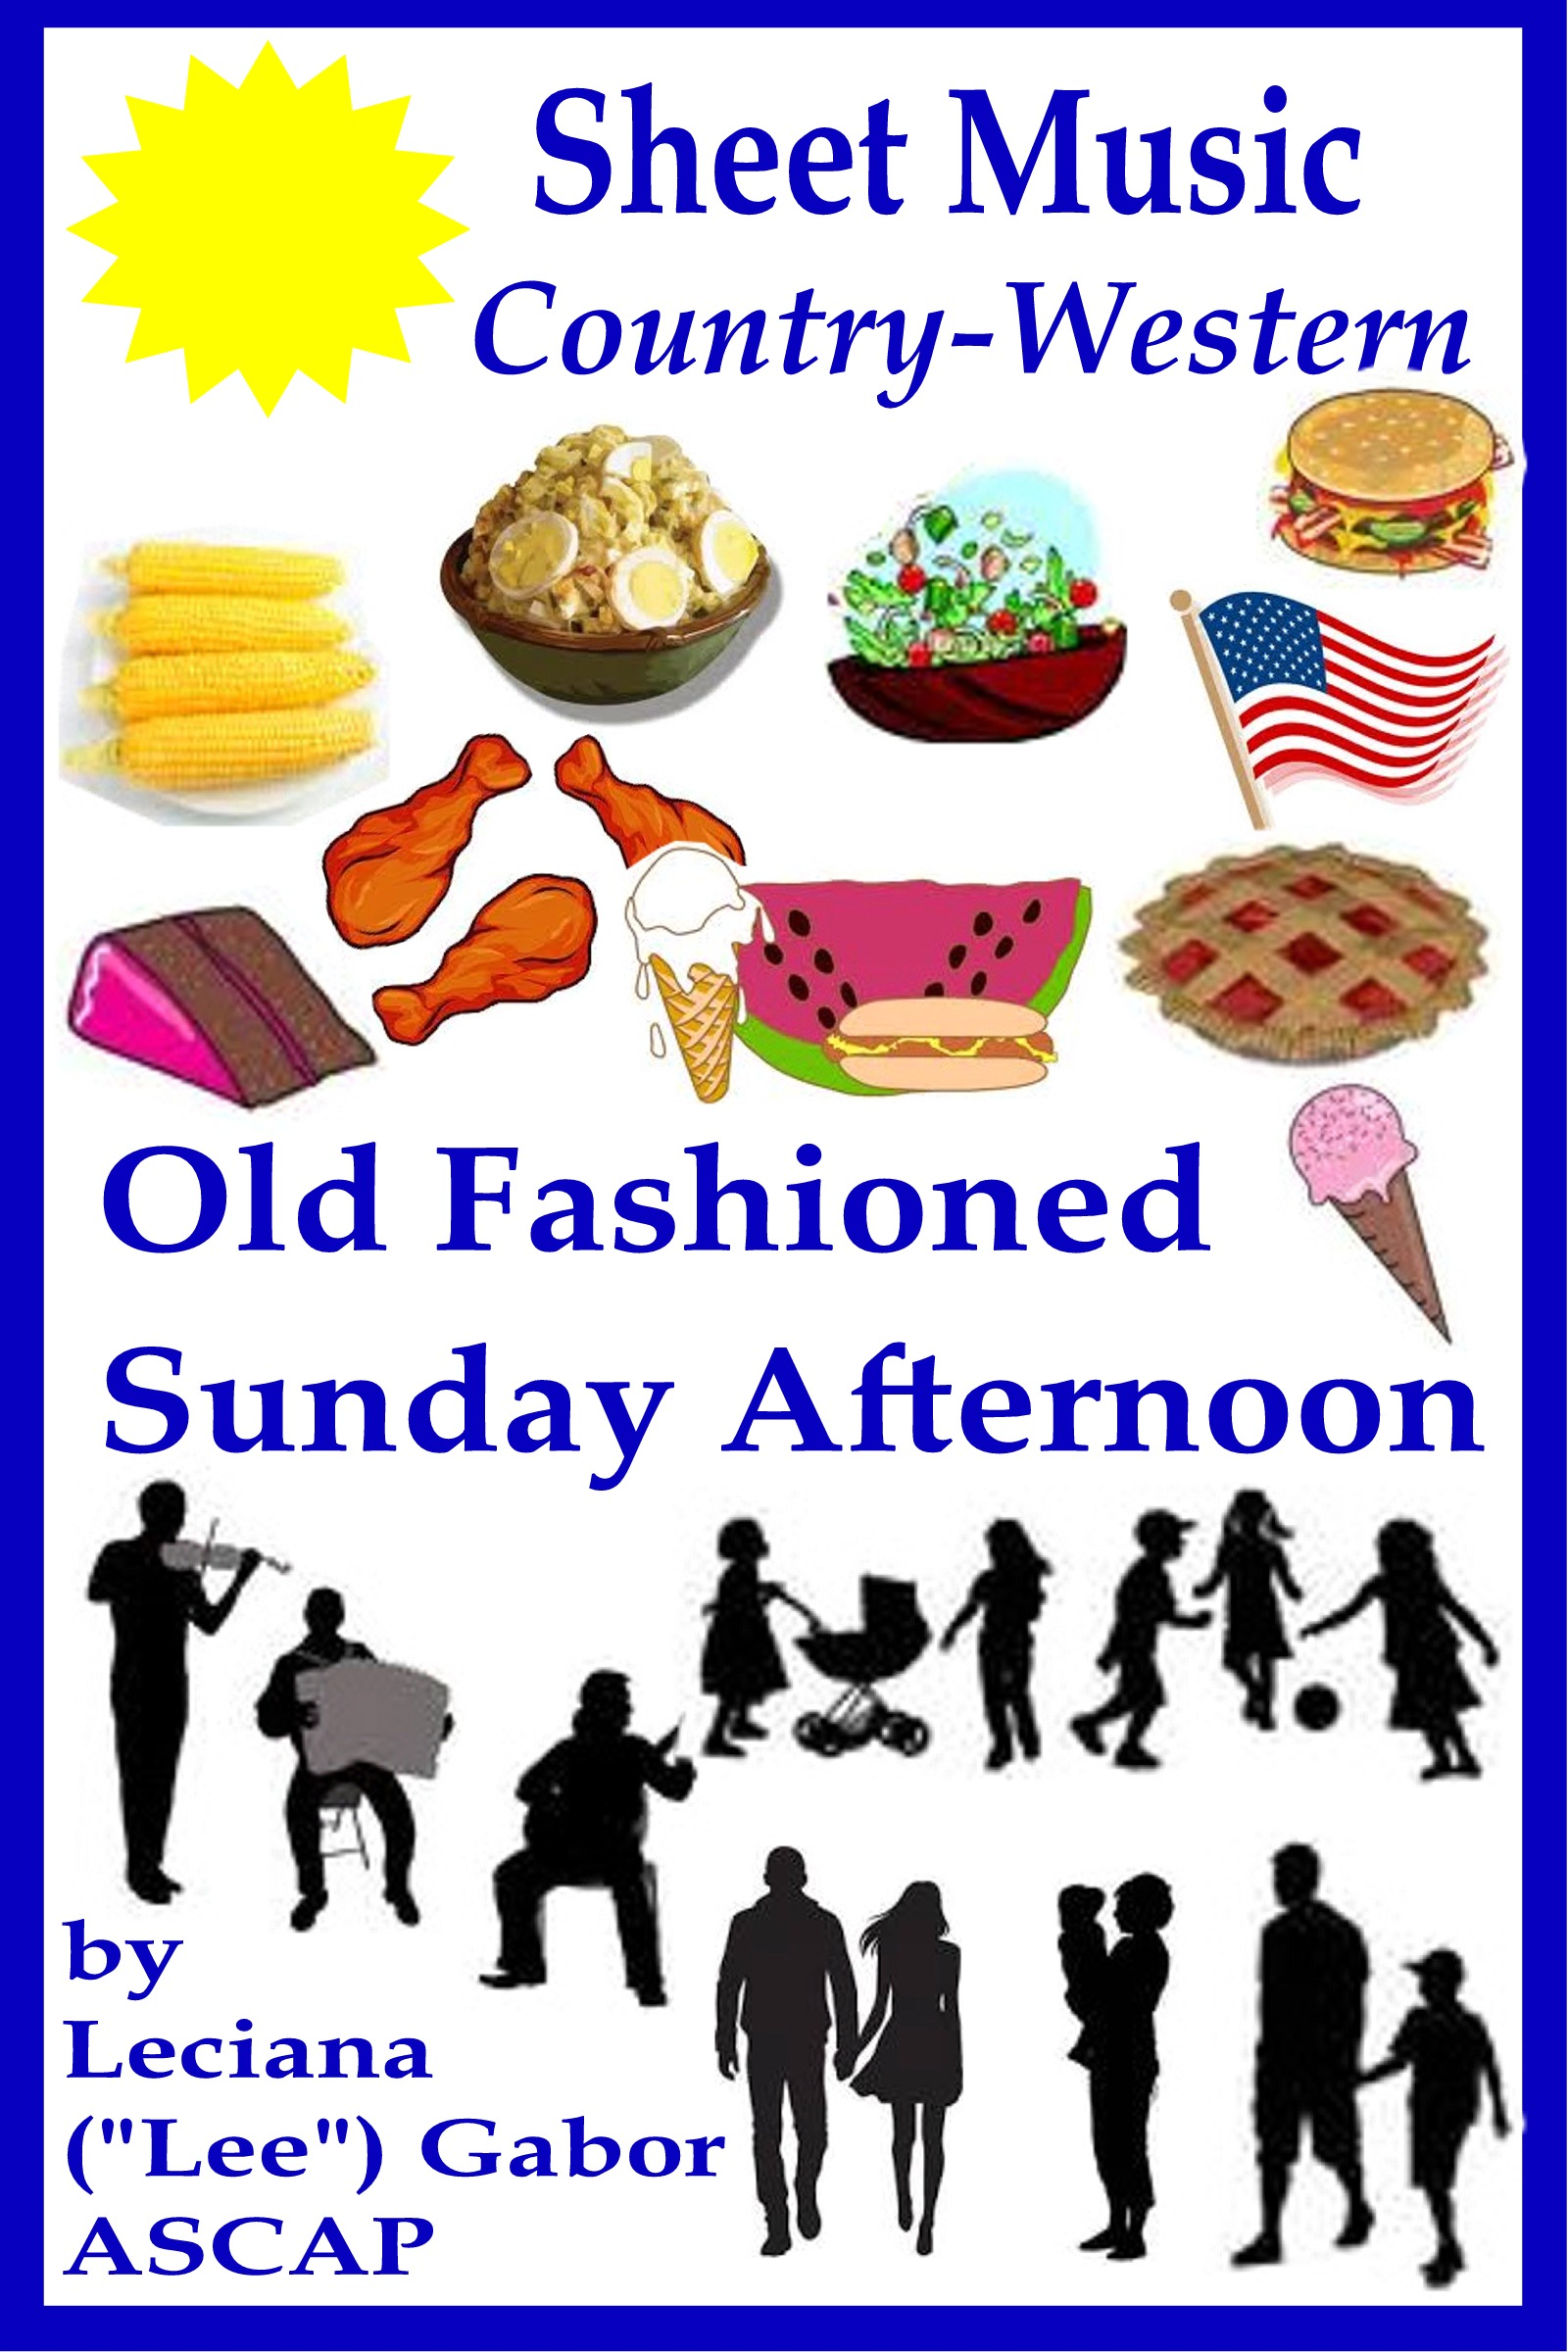 Old Fashioned Book Covers : Smashwords sheet music old fashioned sunday afternoon